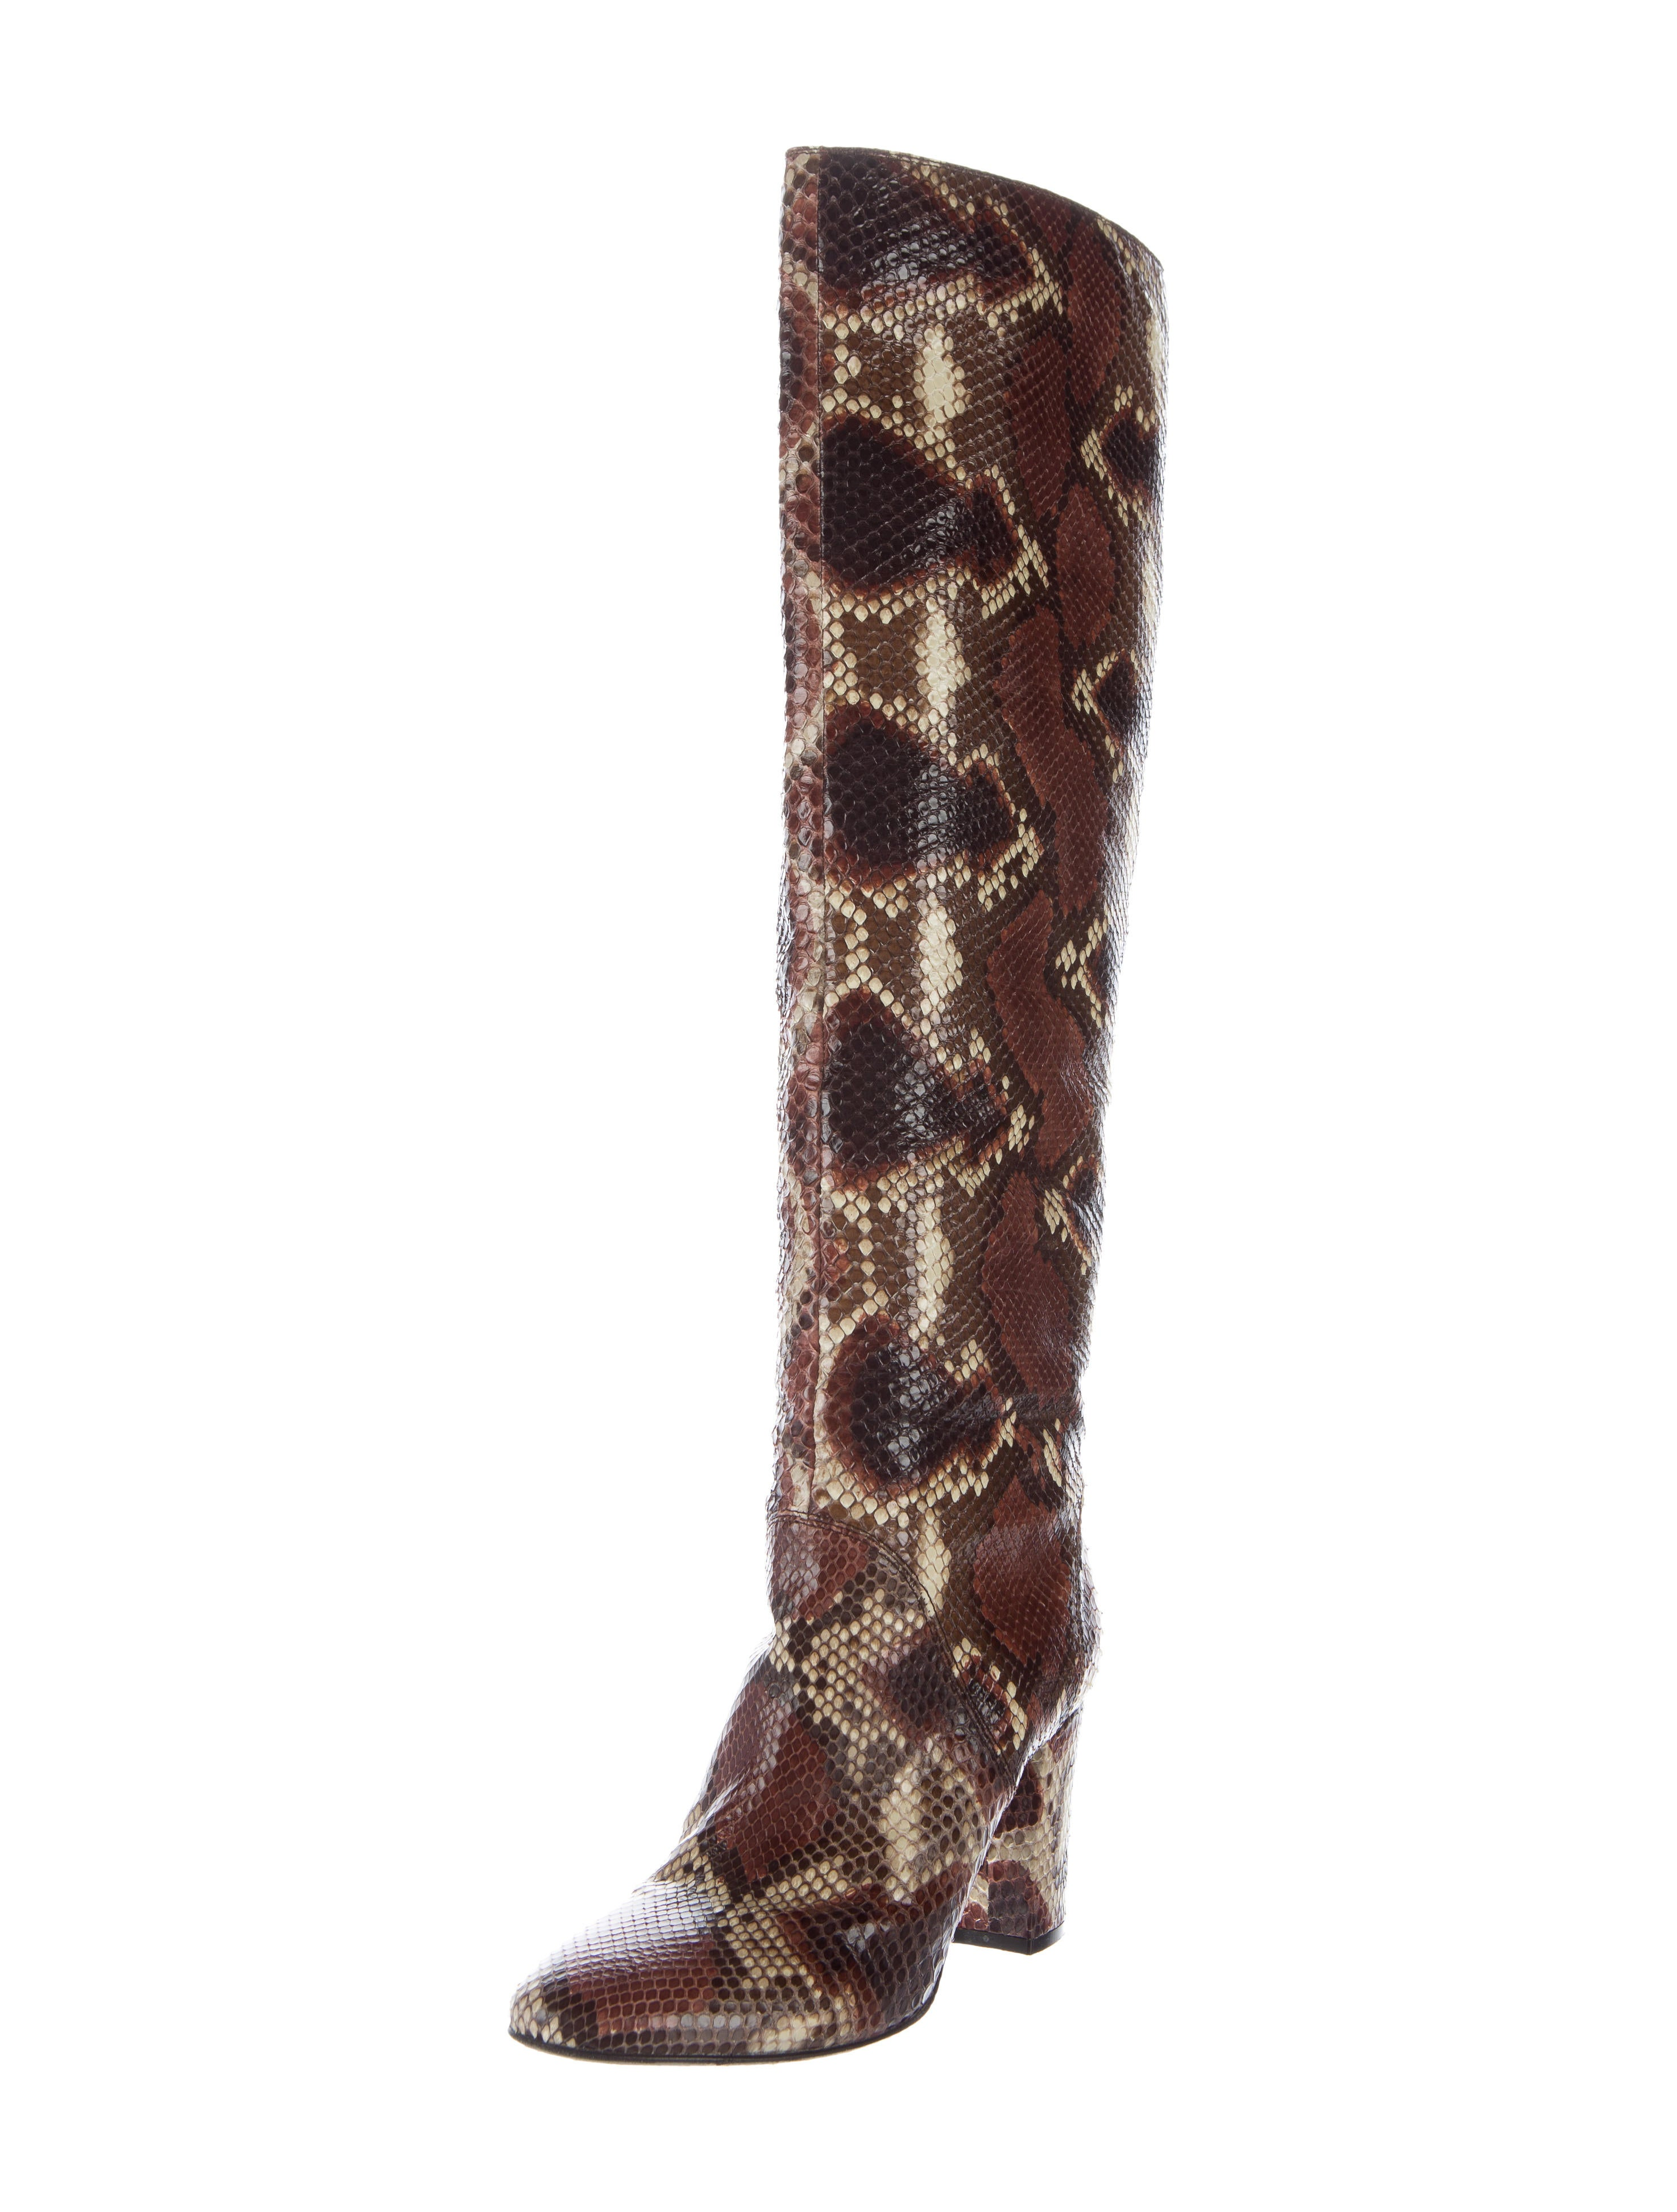 Lanvin Python Knee High Boots Shoes Lan45345 The